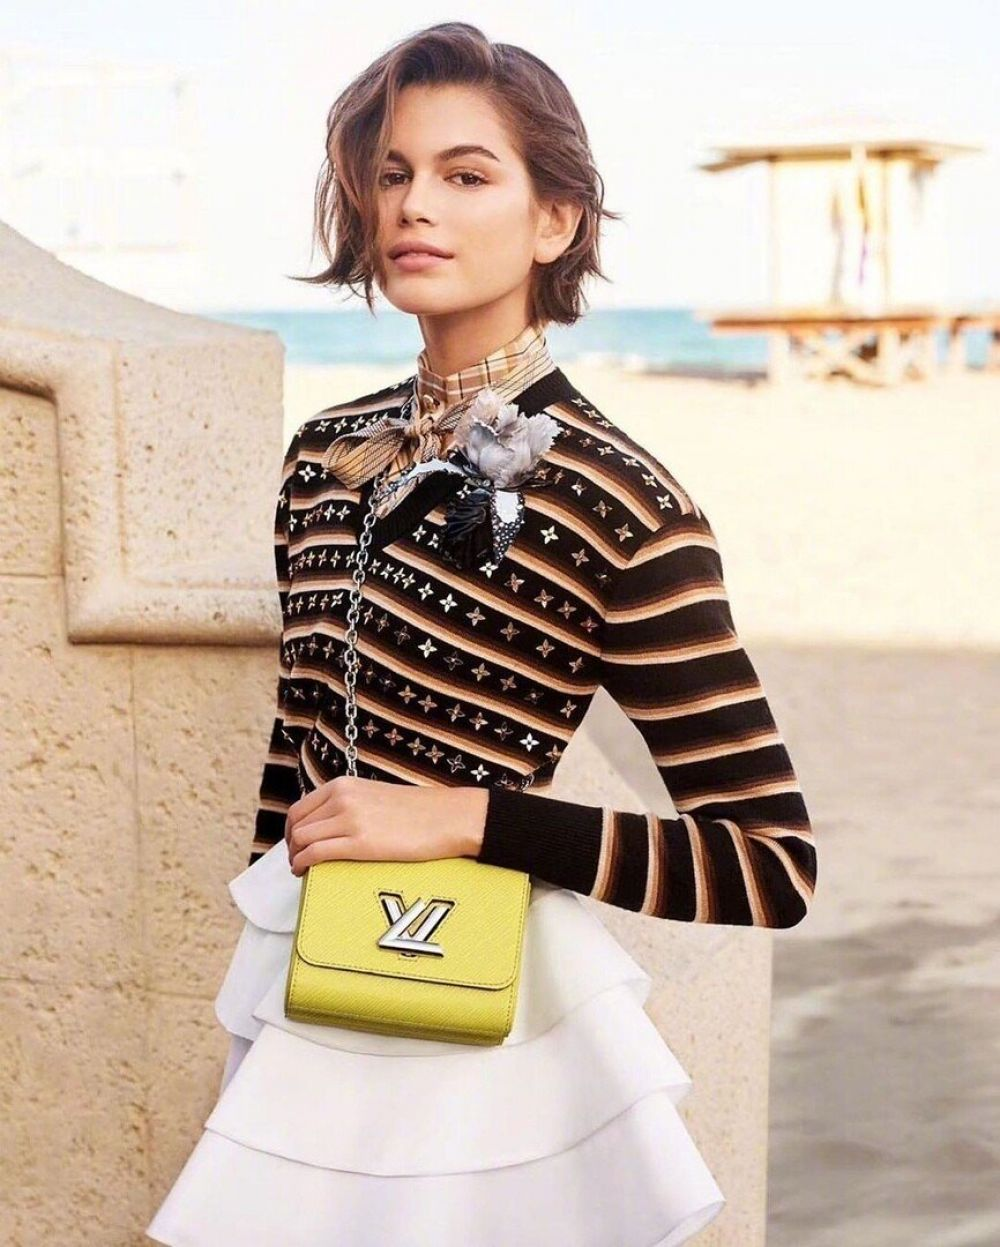 Kaia Gerber for Louis Vuitton Twist Bags for Spring 2020 Campaign 1